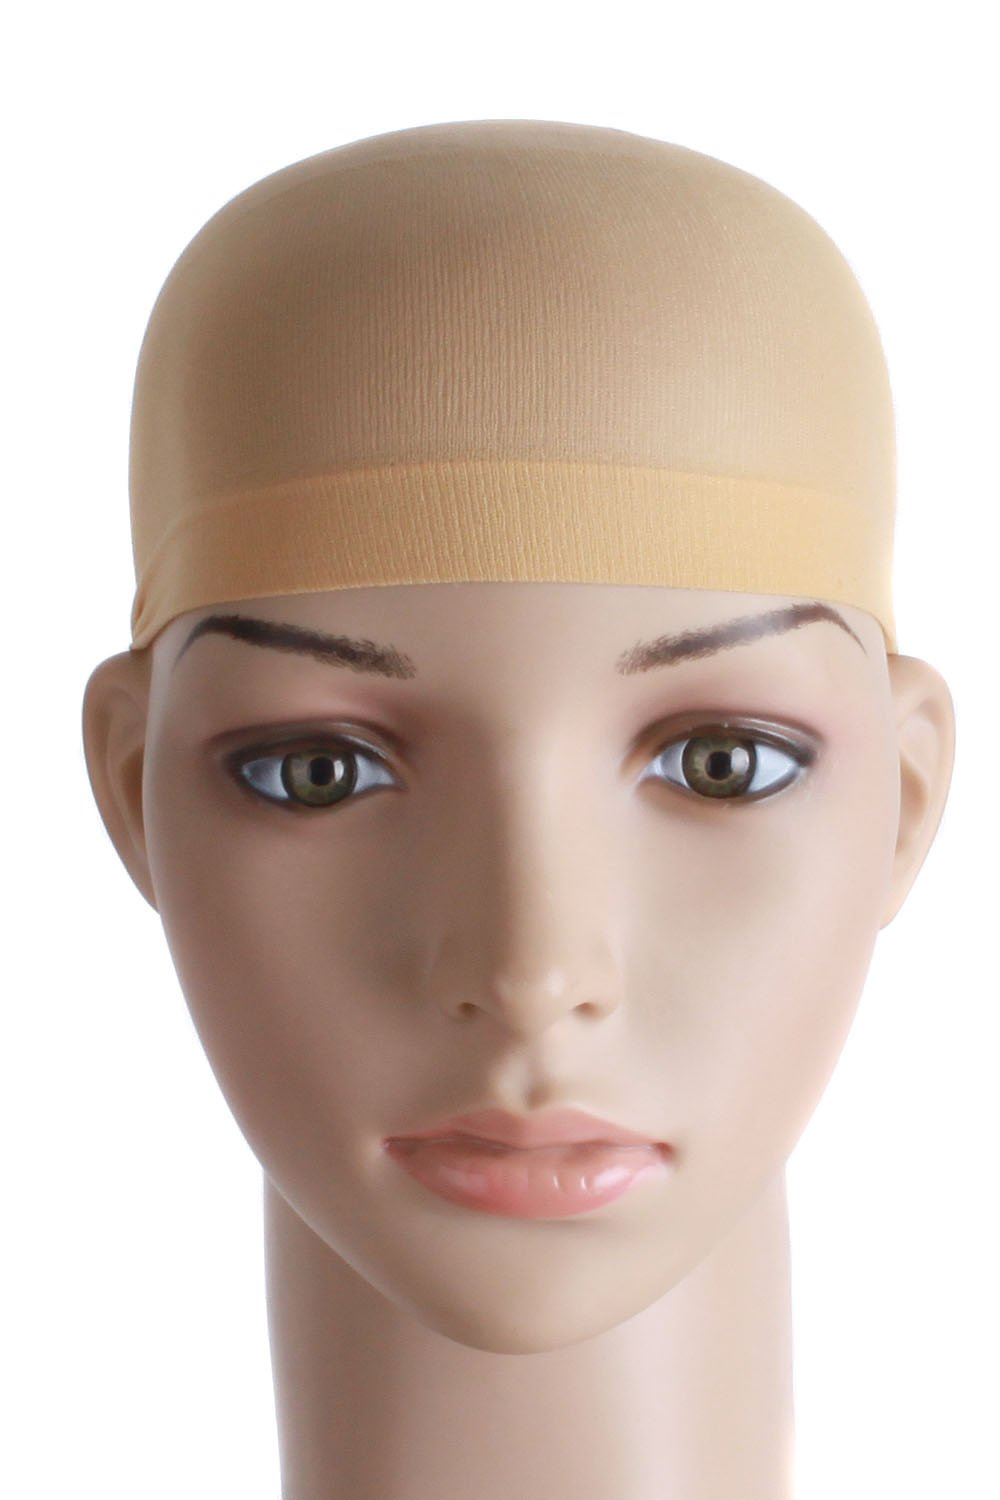 MapofBeauty 2 Pieces One Size Nylon Wig Cap (Neutral Beige Yellow)